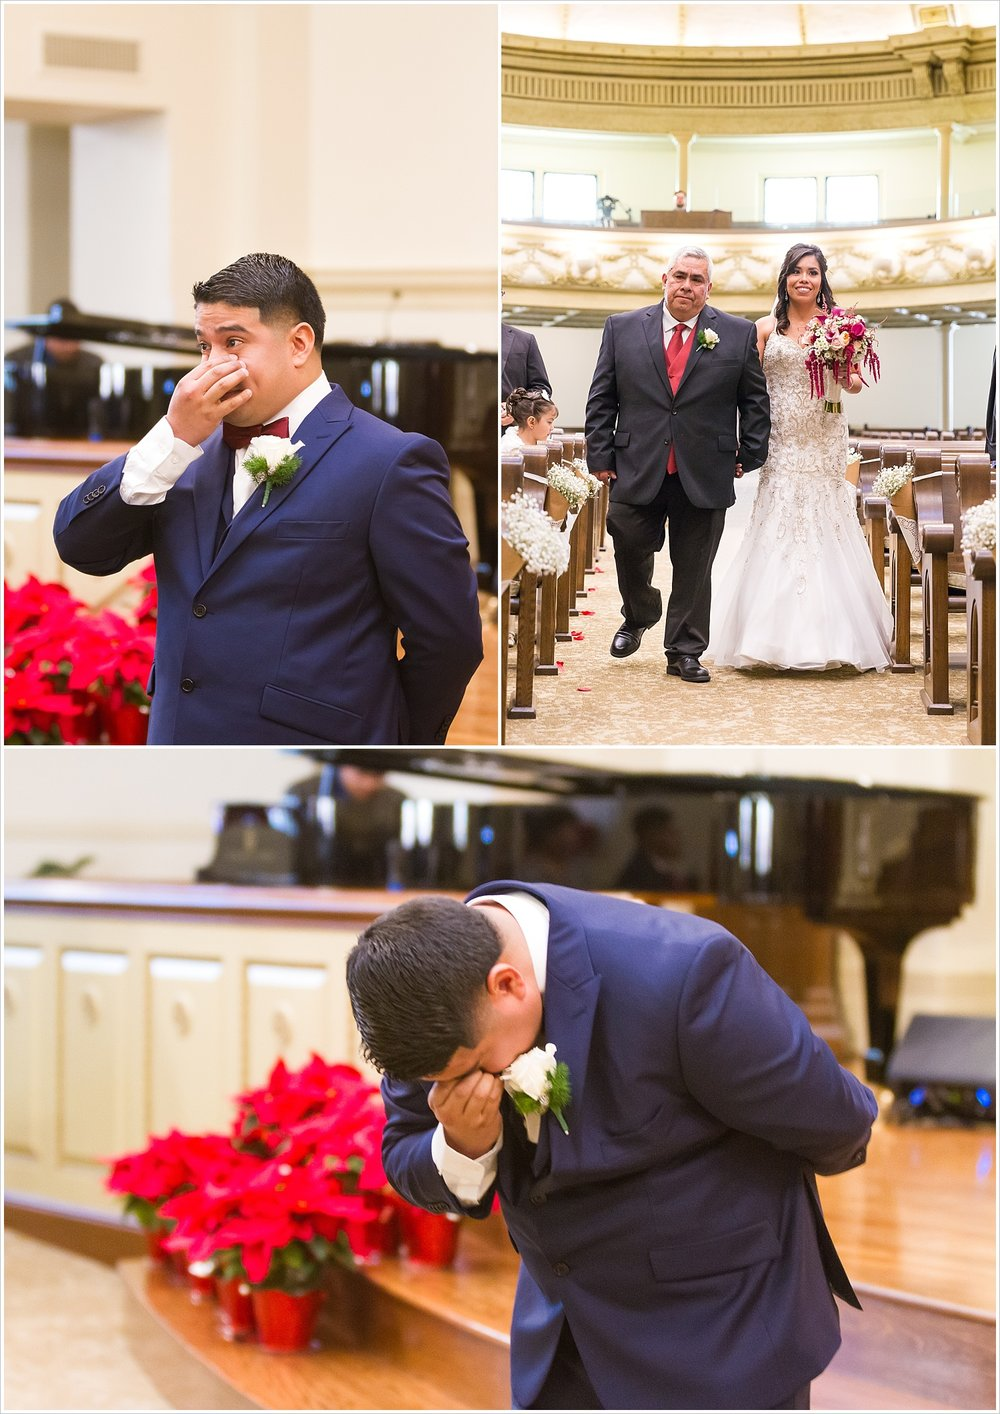 A groom cries when he sees his bride coming down the aisle at a wedding ceremony at FBC Waco - Jason & Melaina Photography - www.jasonandmelaina.com